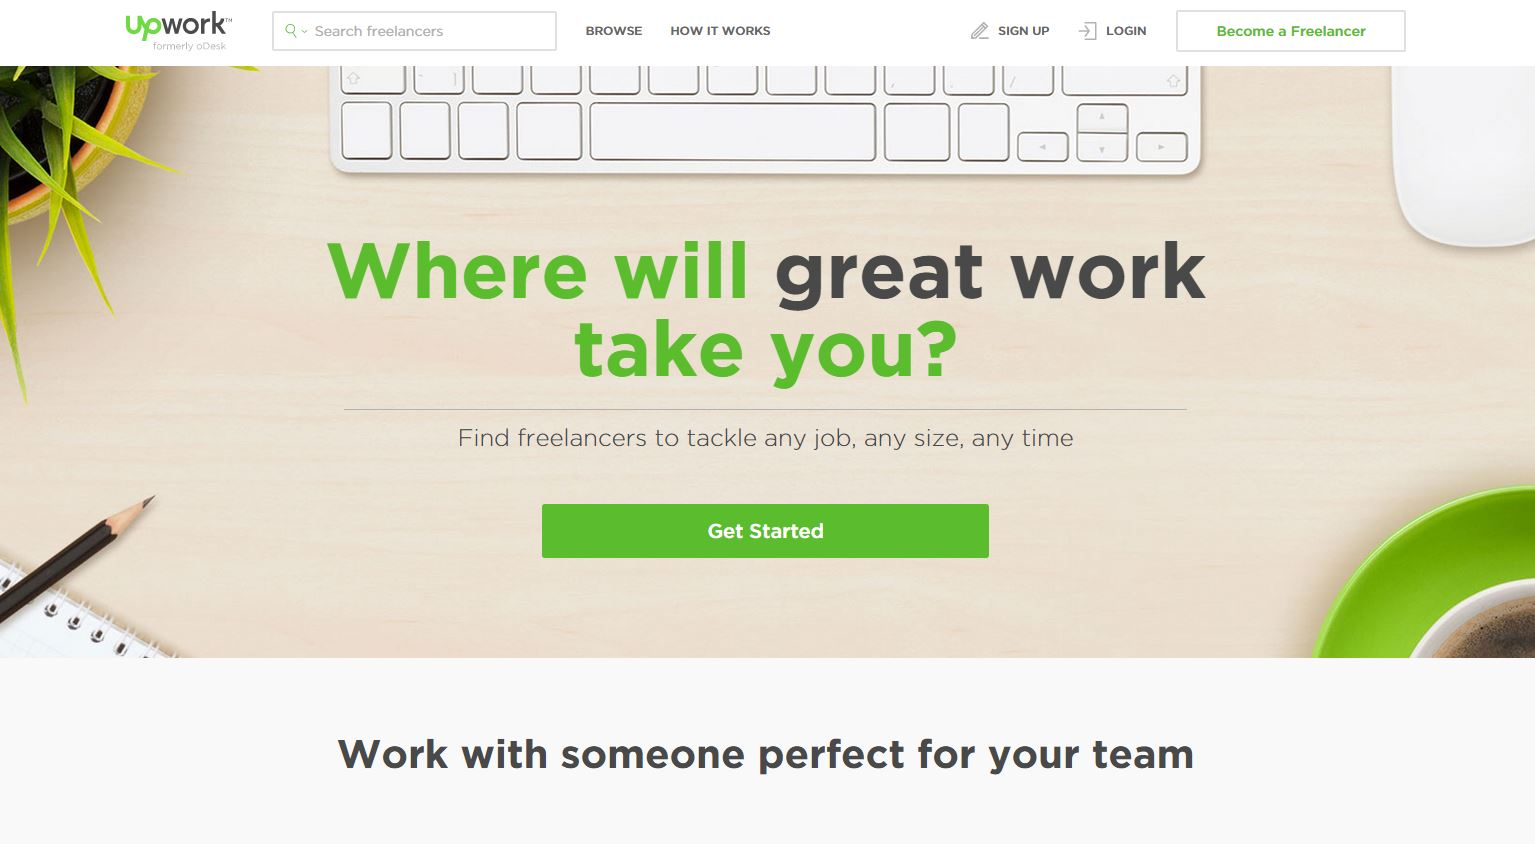 UpWork Review - Score: 8.5